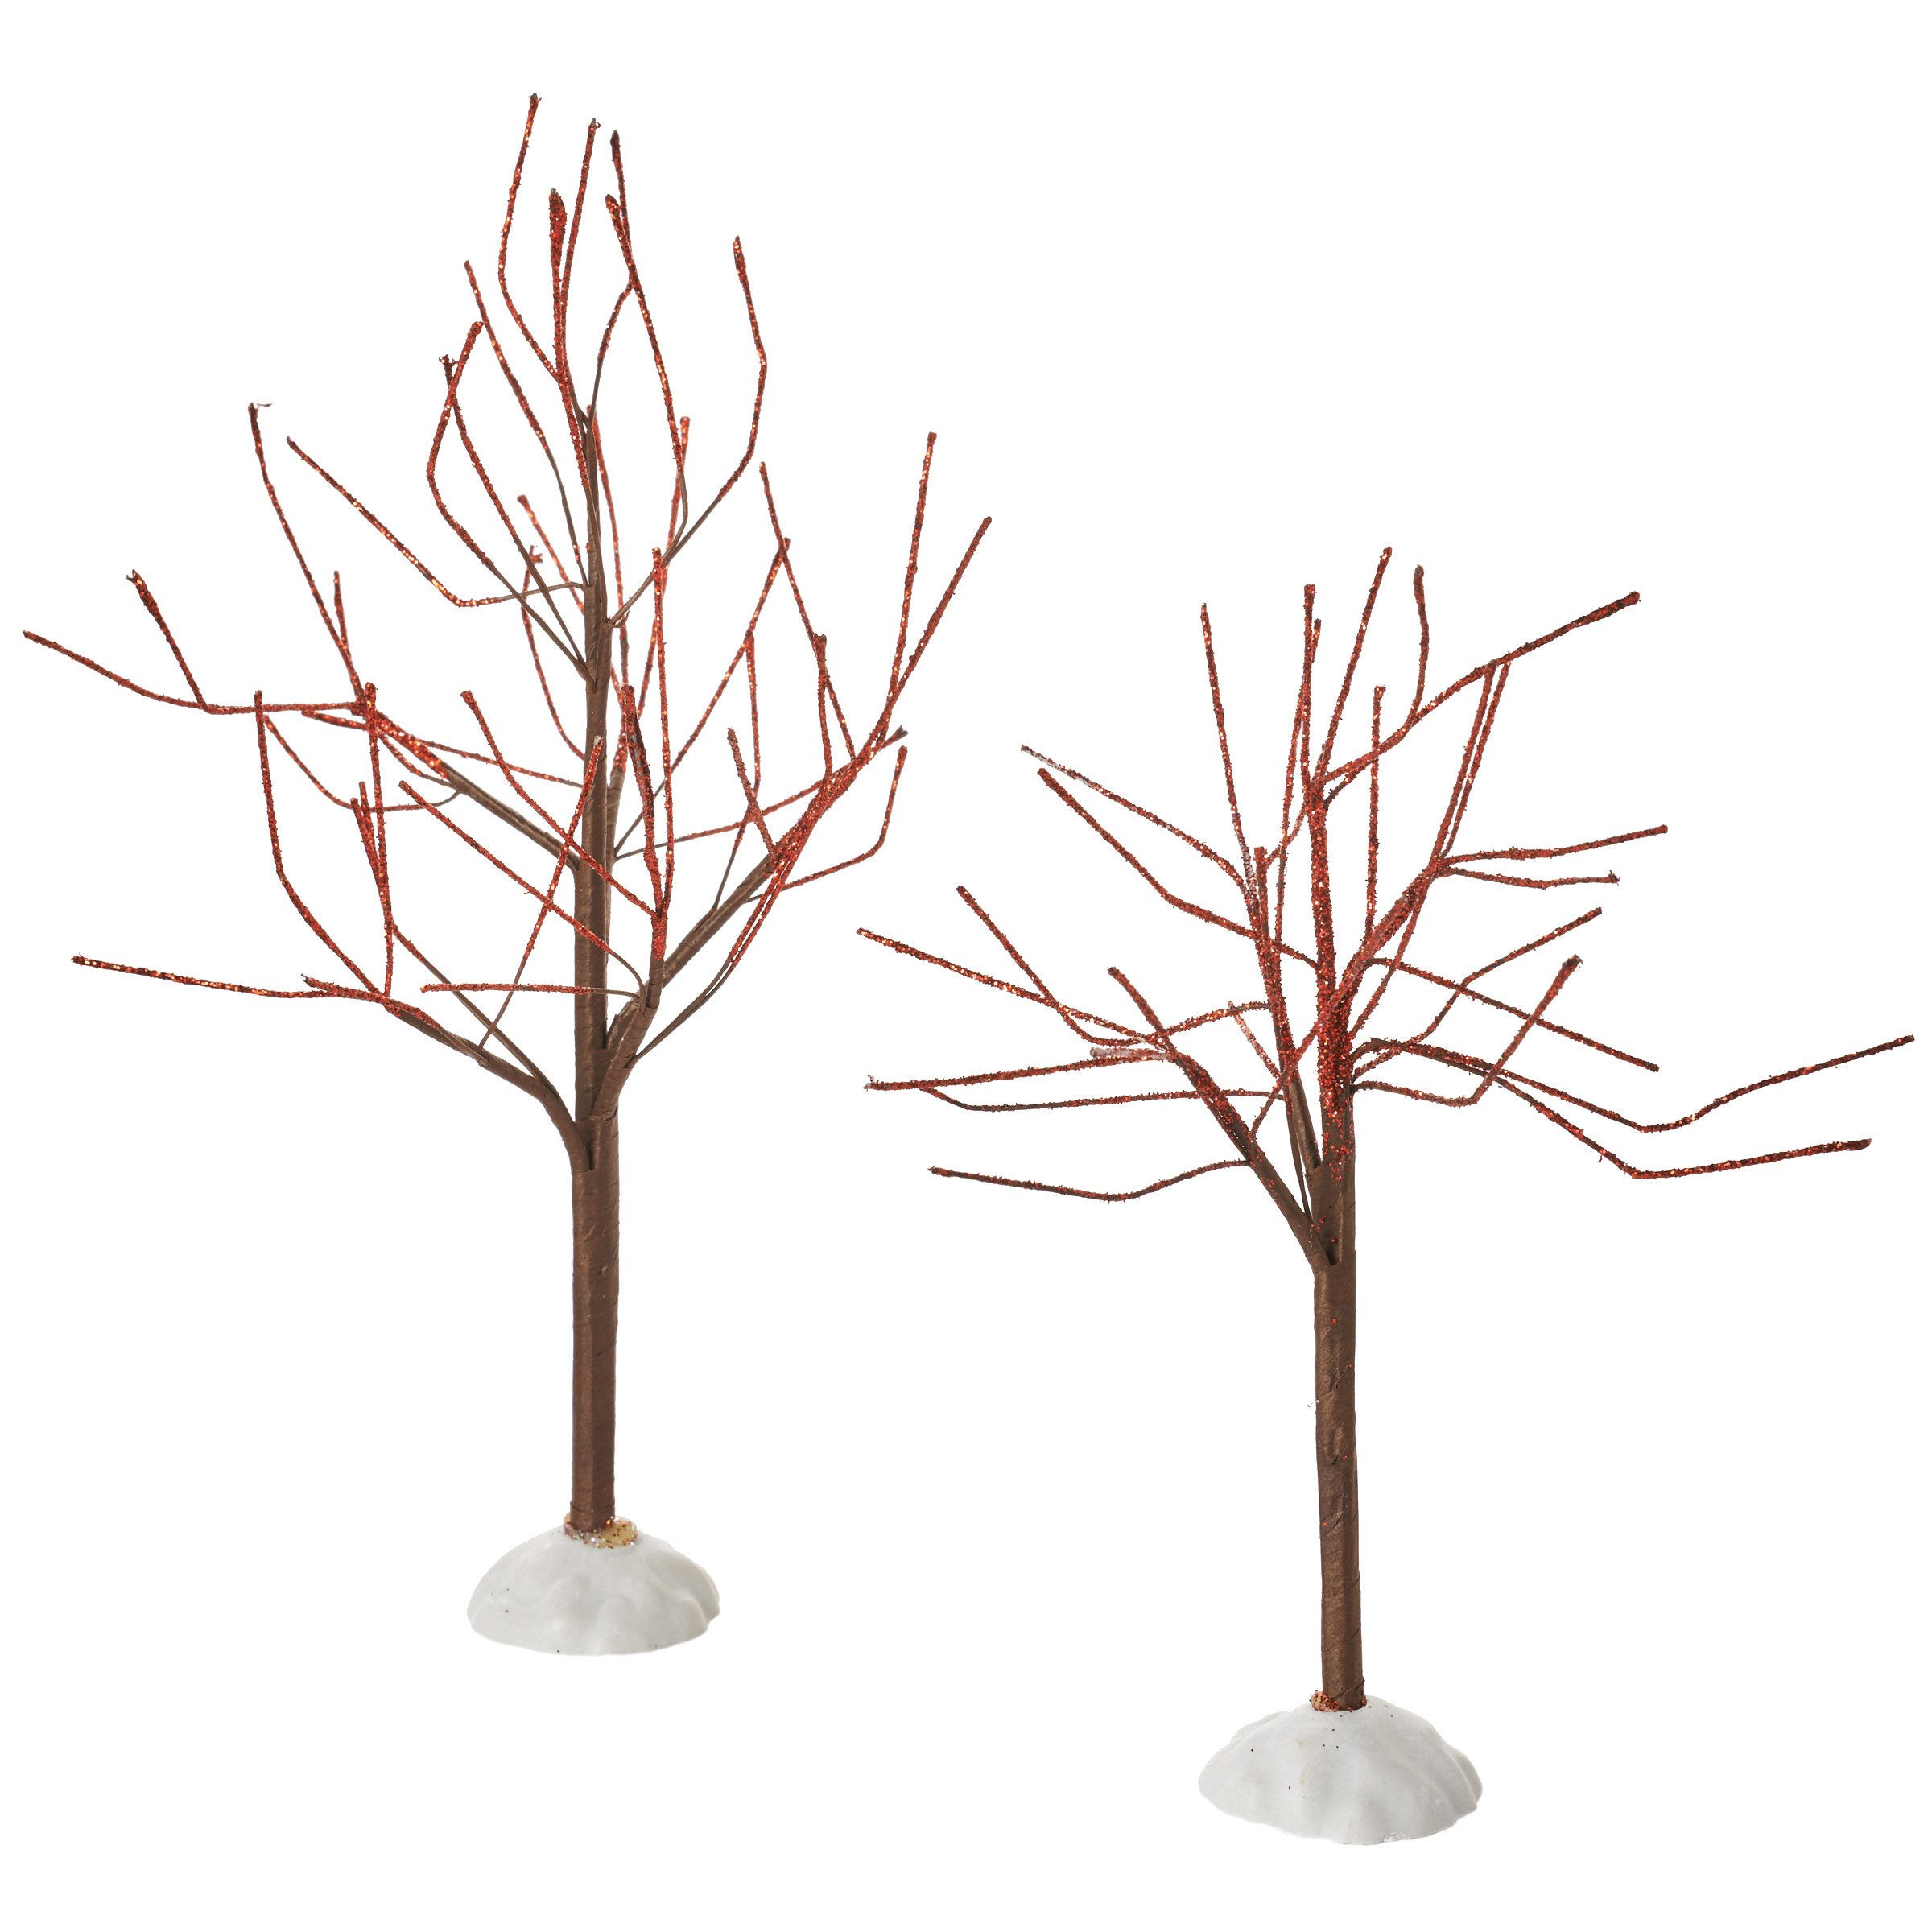 Department 56 Accessories for Villages Red Sparkle Trees Accessory Figurine (Set of 2)